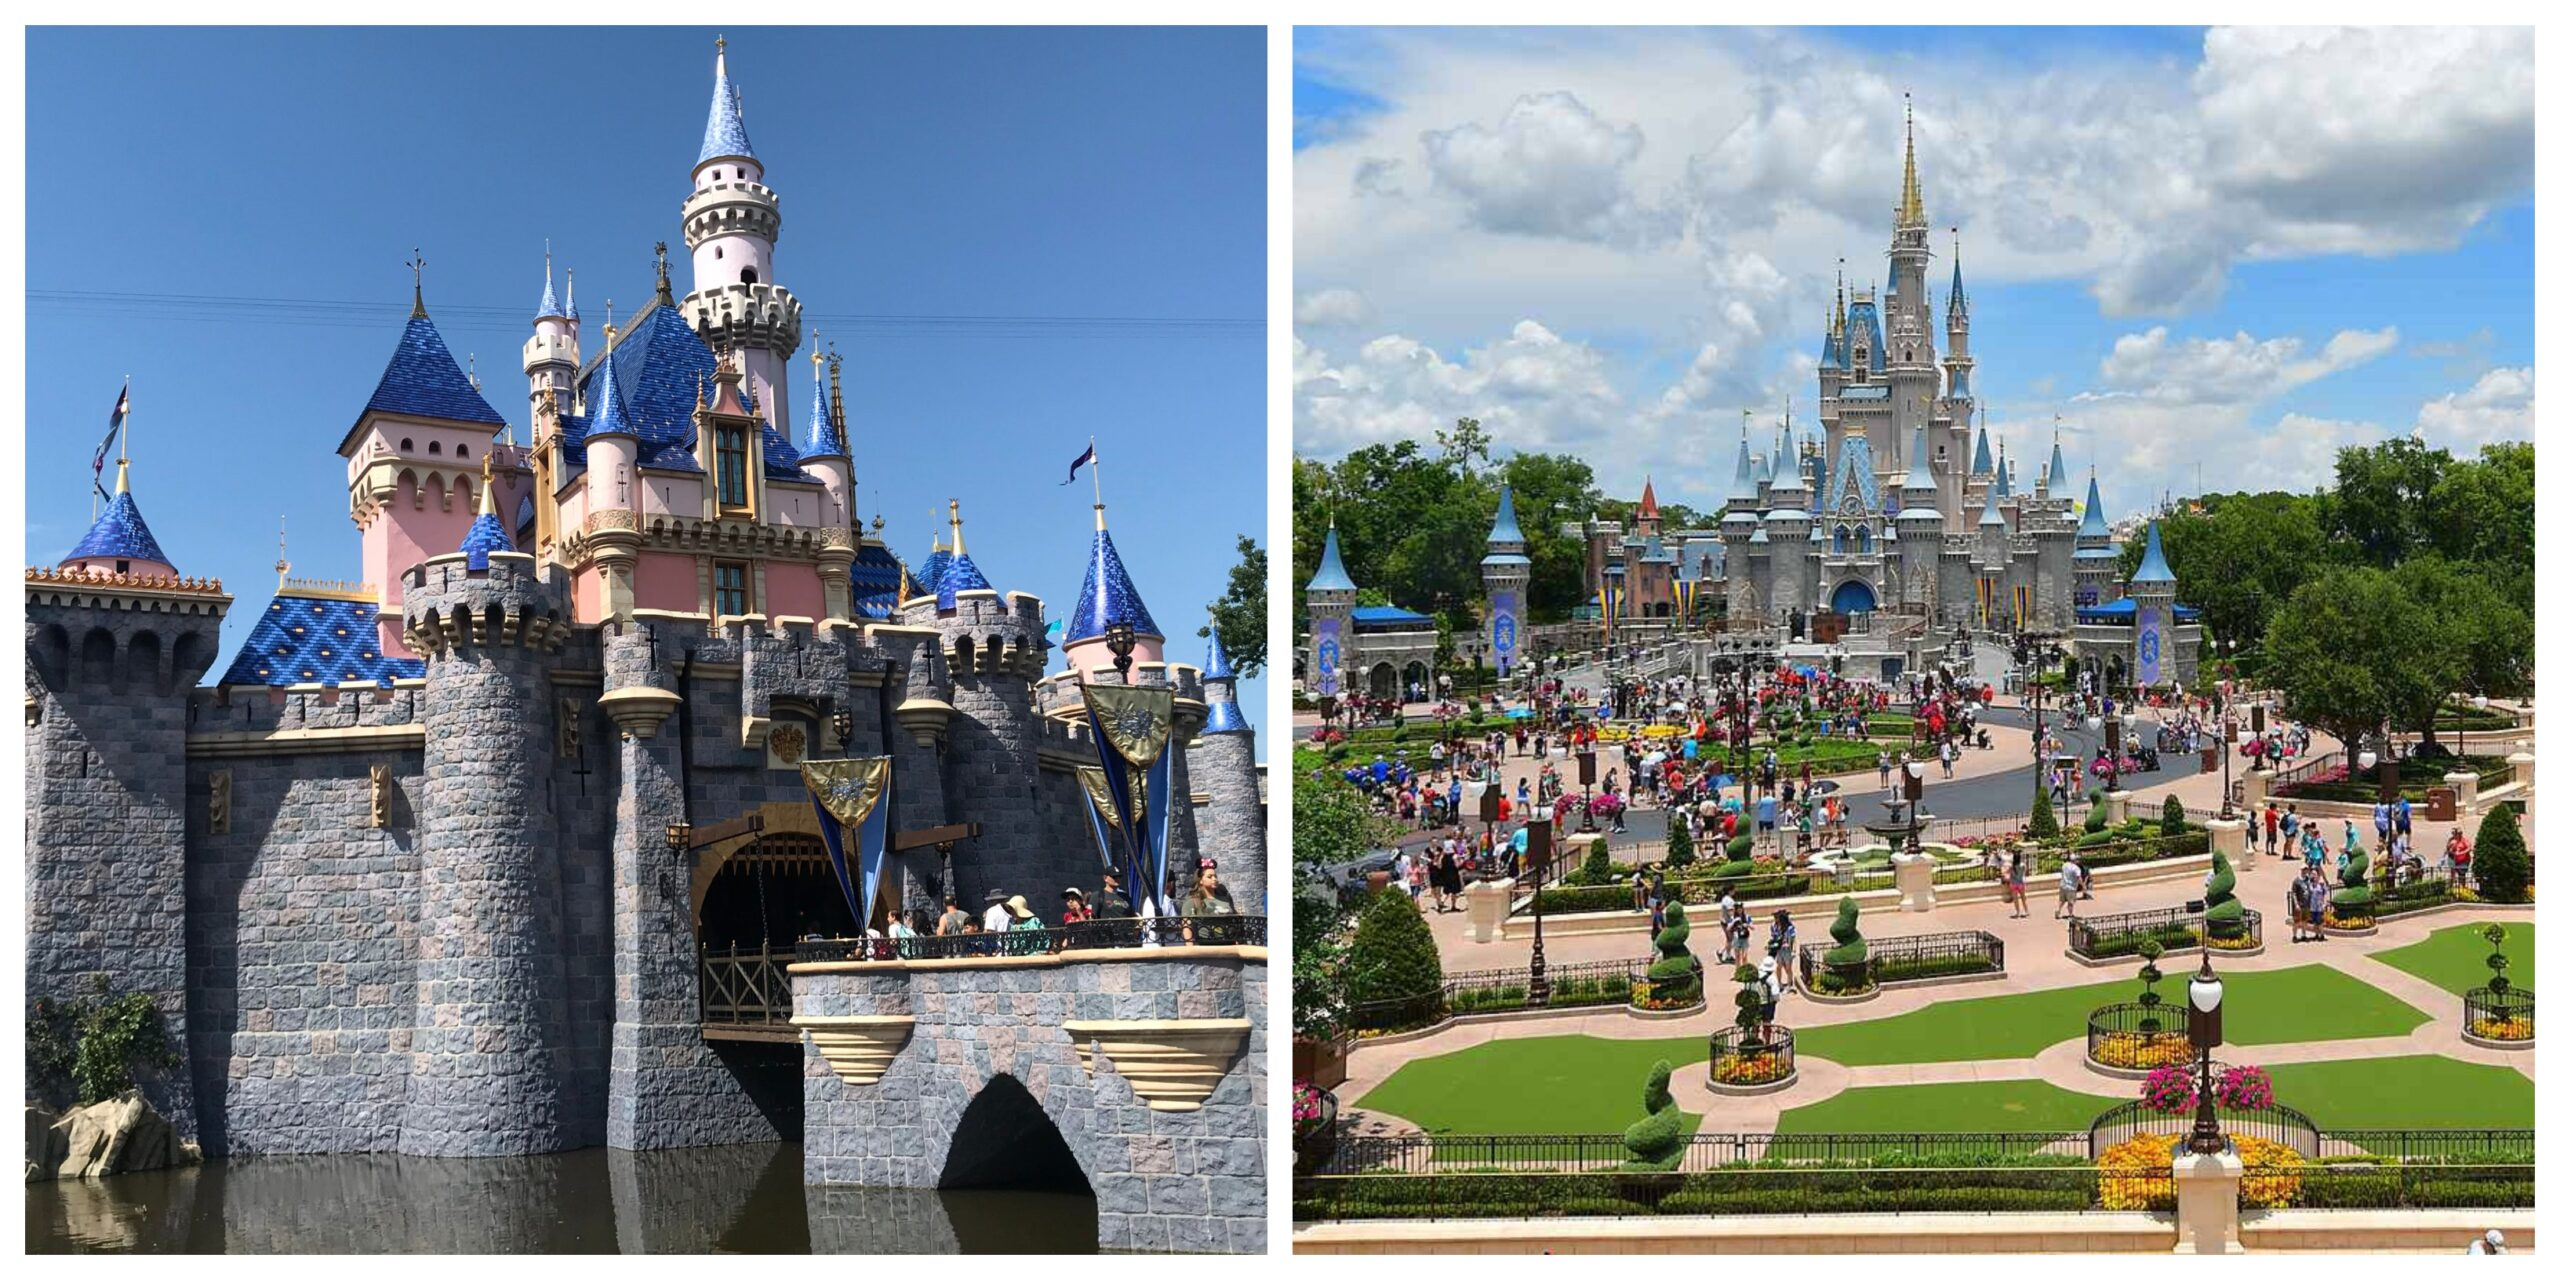 8 Rides That are Way Better at Disneyland Than Disney World